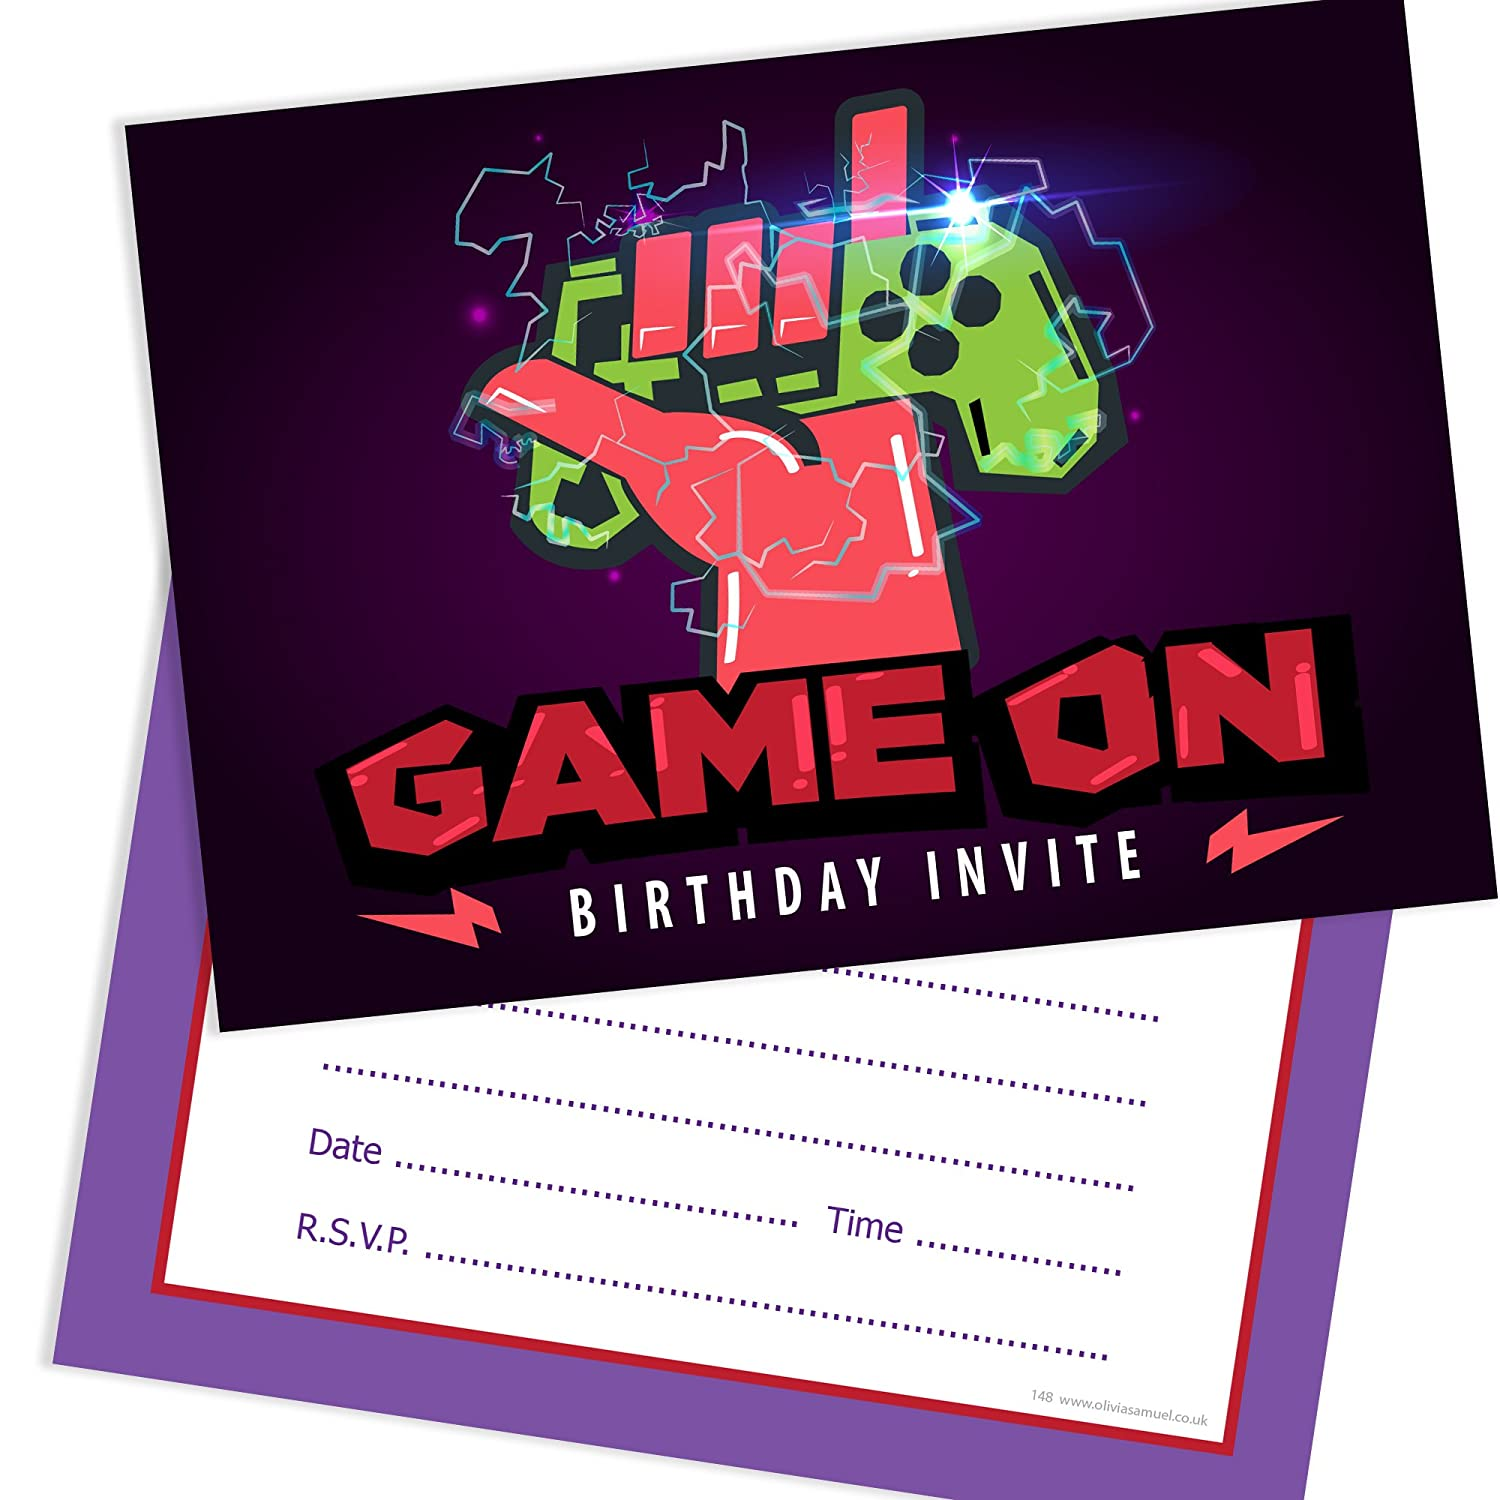 Game On Birthday Invitations - Gamer Party Invitations Ready to ...